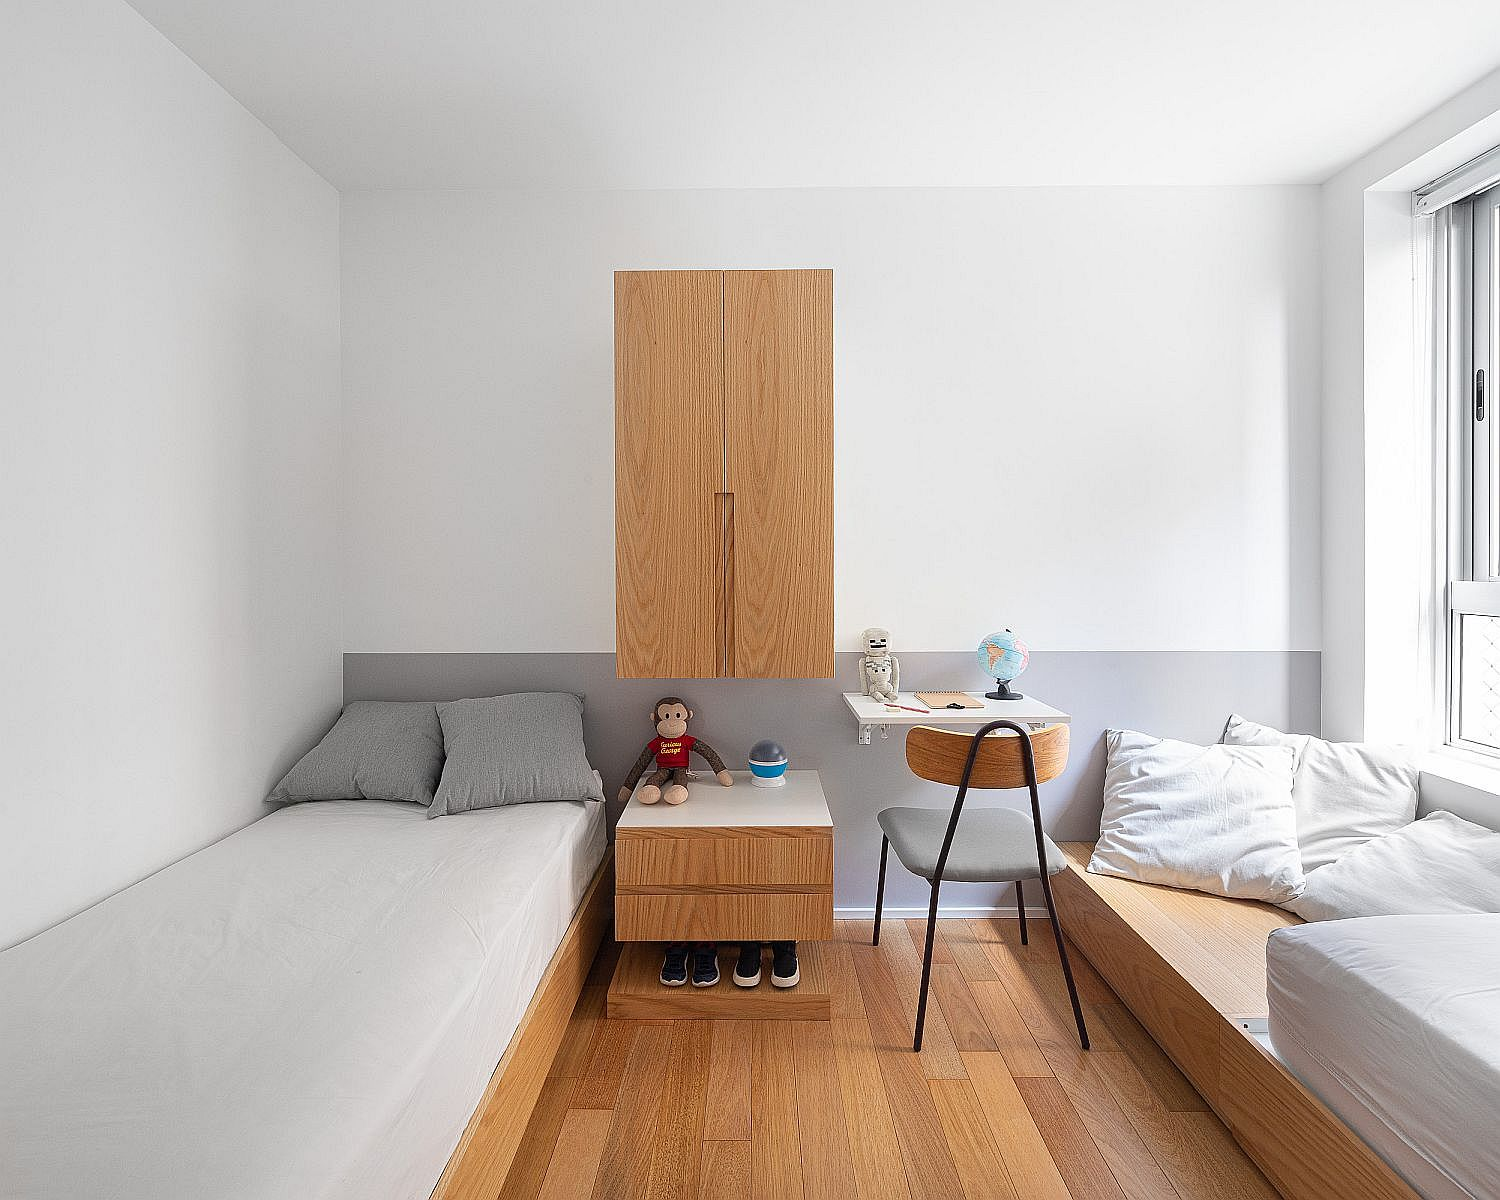 Simple and minimal design of the kids' room and guest space with wooden beds and benches